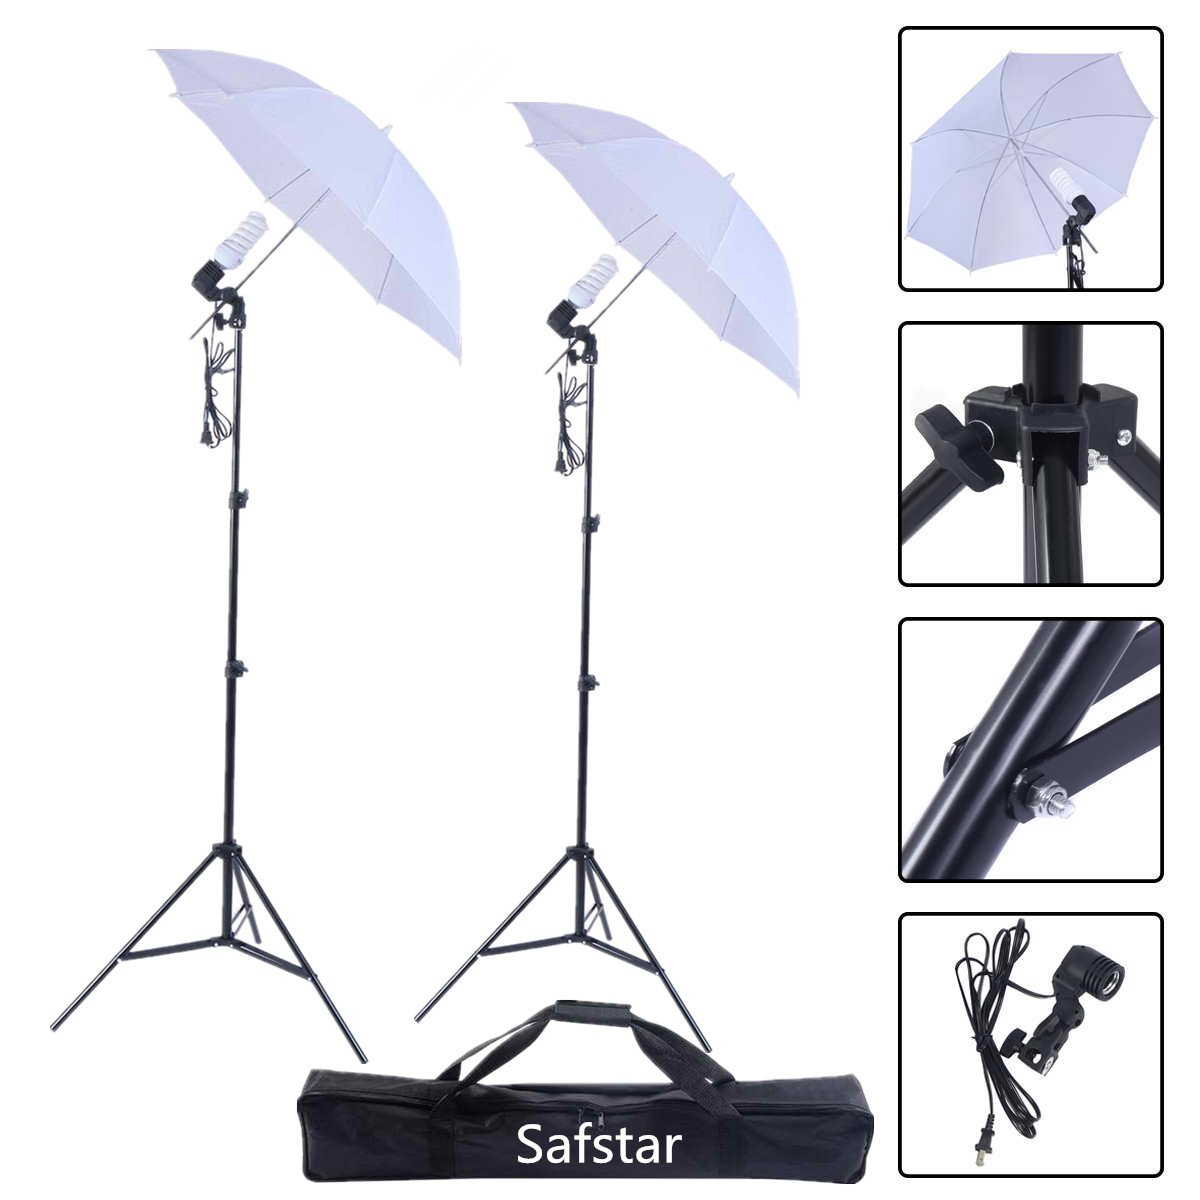 Safstar Photography Studio Video Day Light Umbrella Continuous Lighting Kit Photo Model Portraits Shooting Lights Set of 2 by S AFSTAR